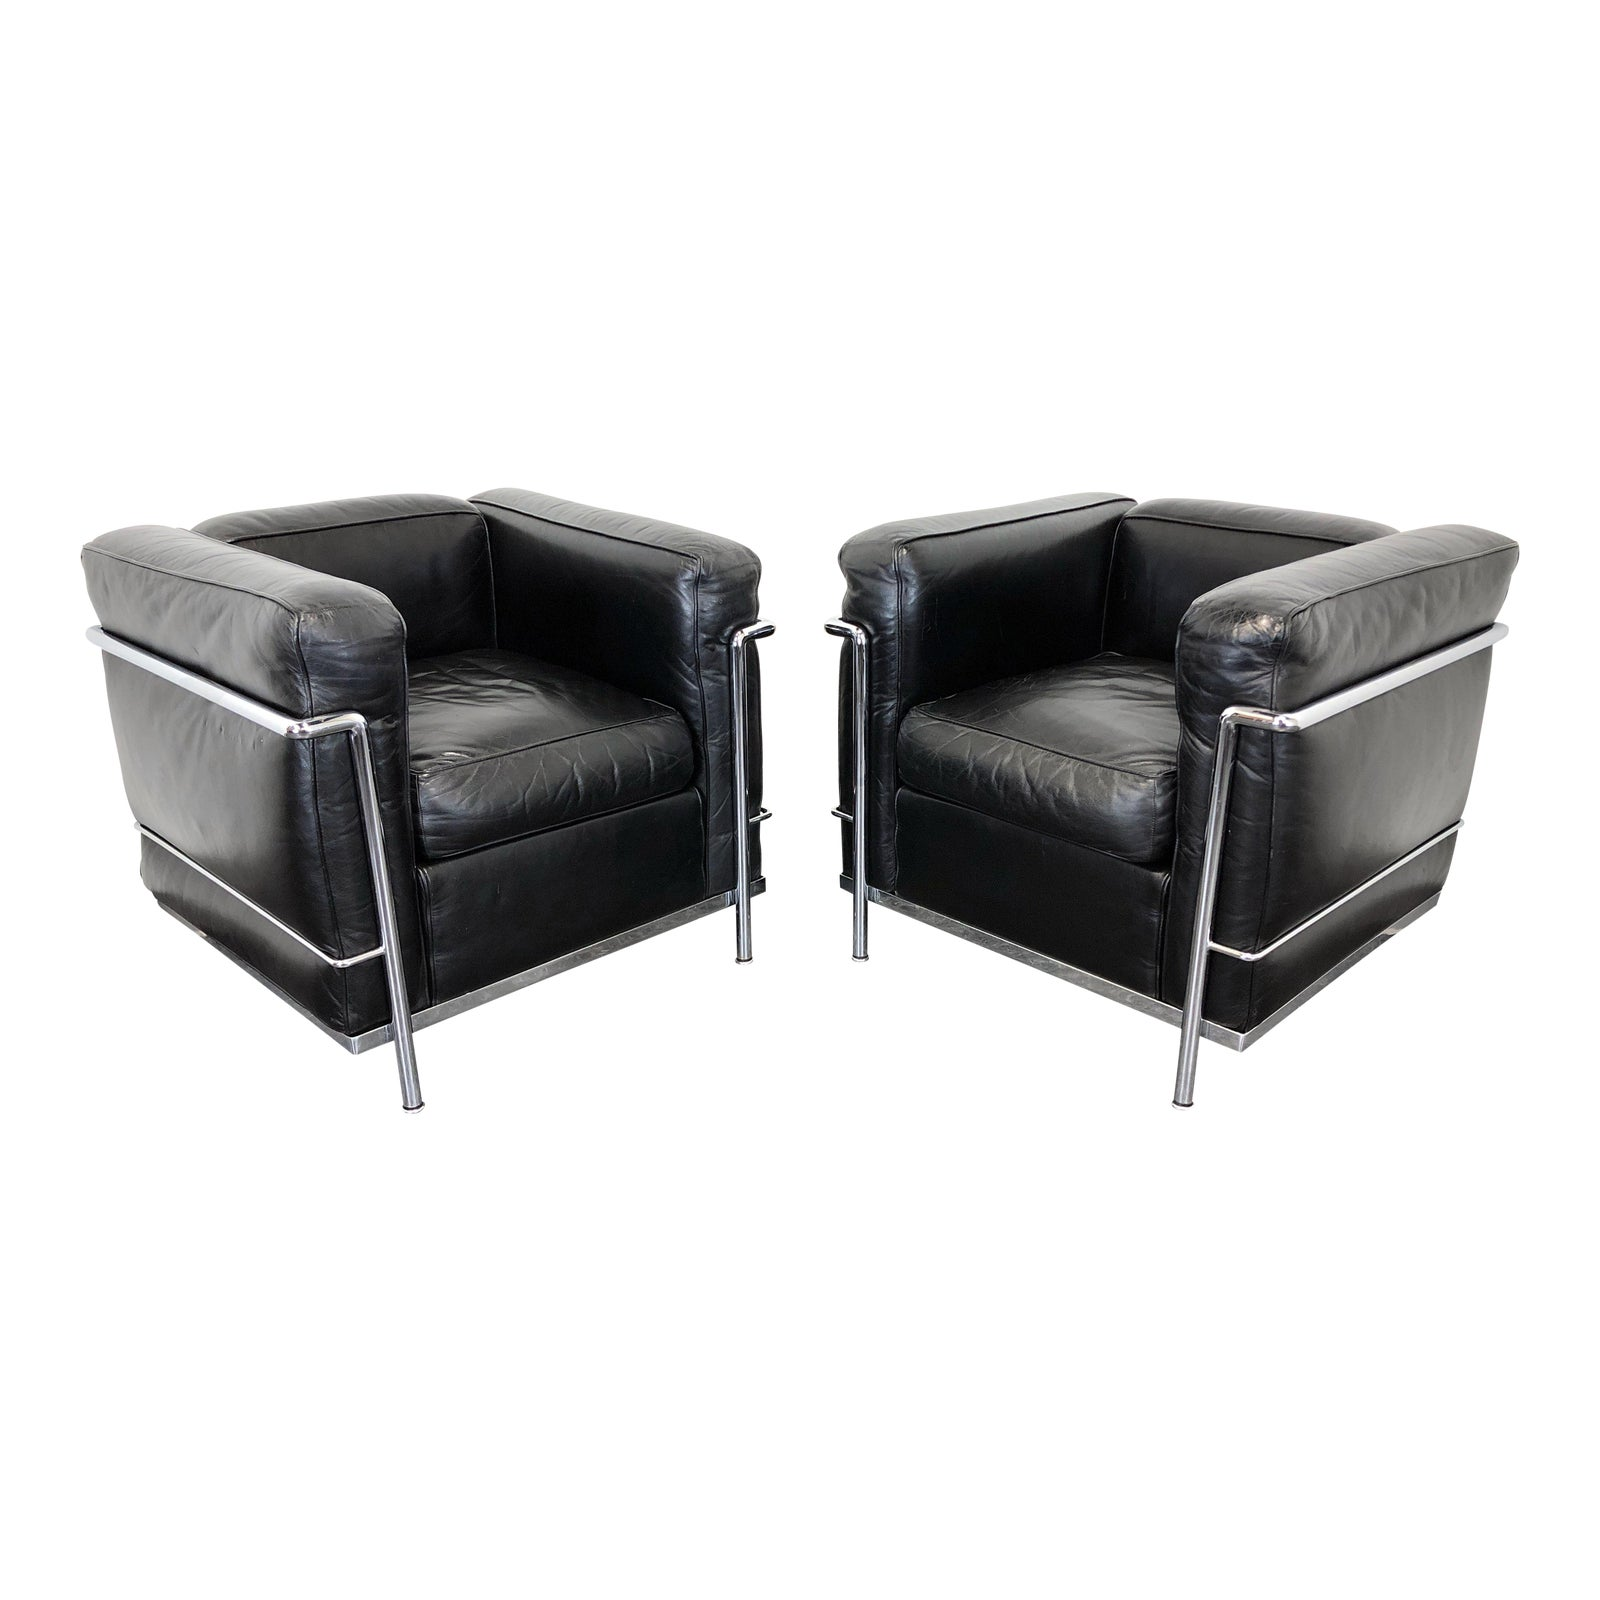 Cassina \'Lc2 Petit Modele\' Le Corbusier Club Chairs in Leather